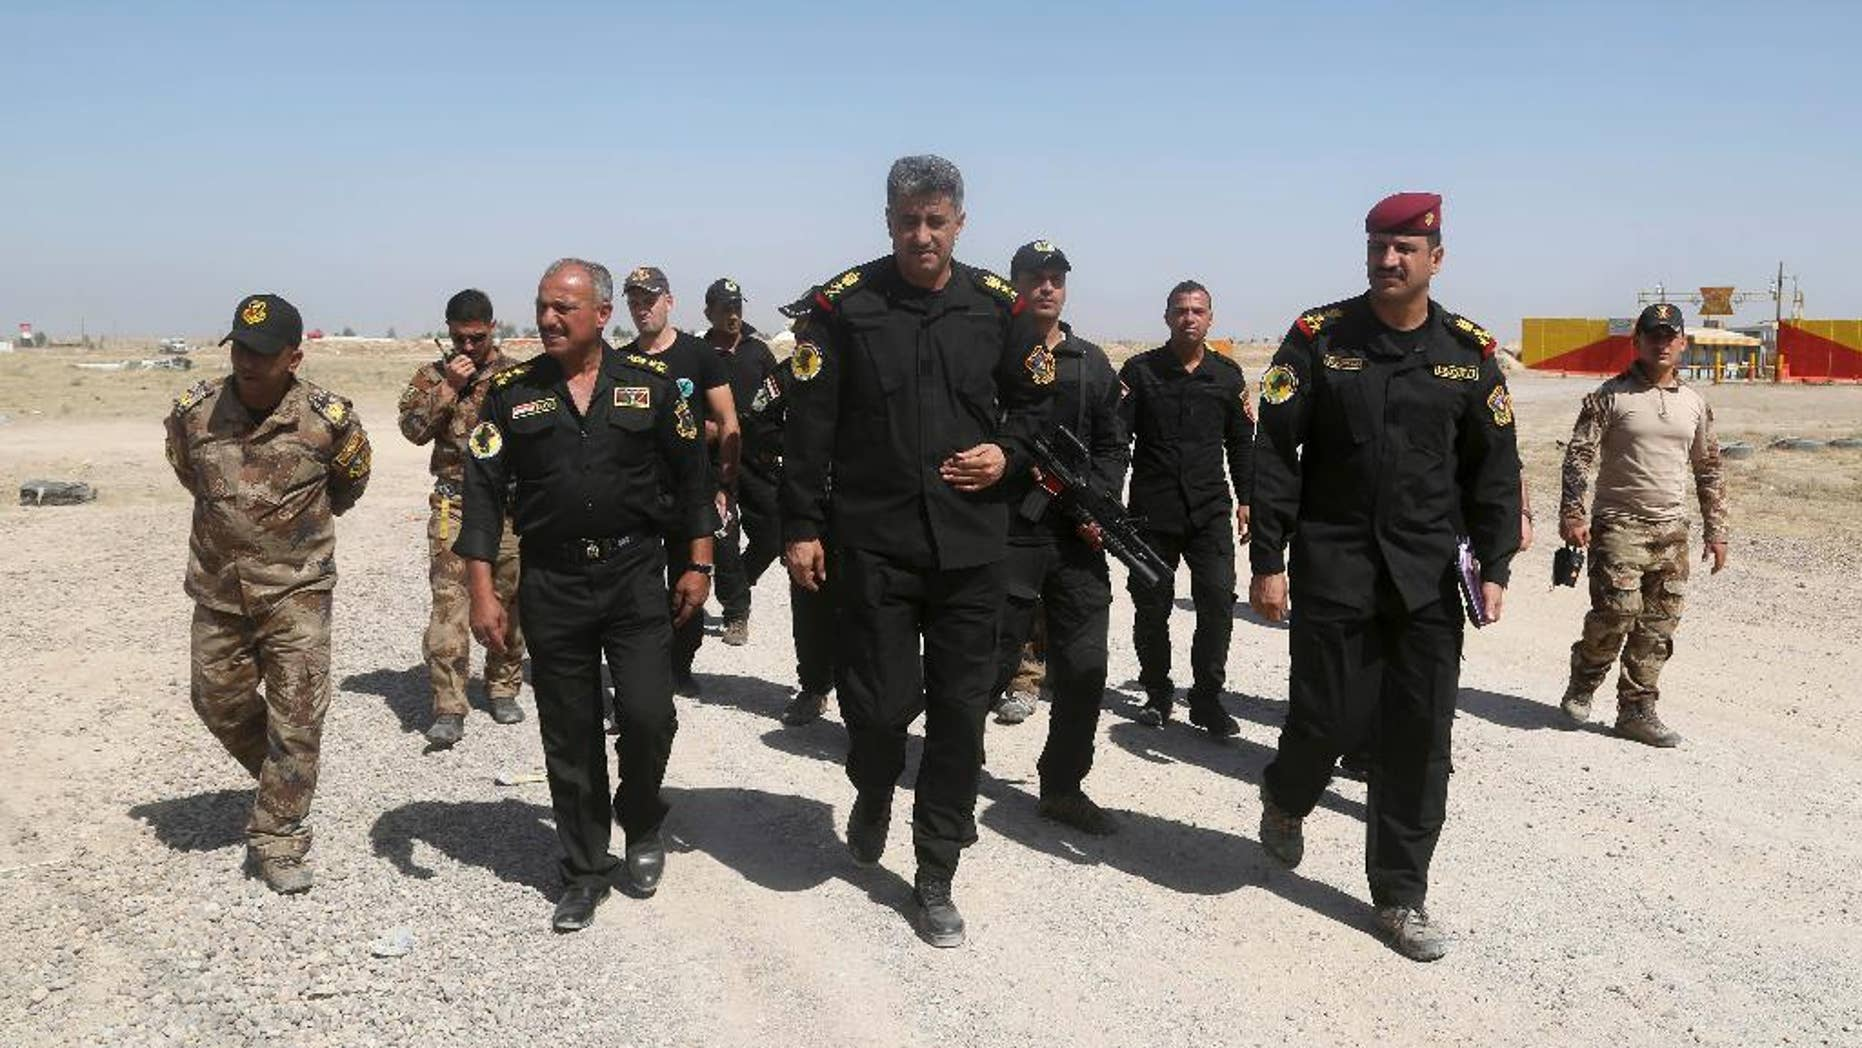 Commander of the Fallujah operation, Lt. General Abdul-Wahab al-Saadi, center, inspects his forces ahead of an operation to re-take the Islamic State-held City of Fallujah, outside Fallujah, Iraq, Sunday, May 29, 2016. Teaming up with paramilitary troops and backed by aerial support from the U.S.-led coalition, Iraqi government launched a large-scale offensive to dislodge IS militants from the city of Fallujah, one of the last major IS strongholds in Iraq located about 40 miles (65 kilometers) west of Baghdad. (AP Photo/Khalid Mohammed)